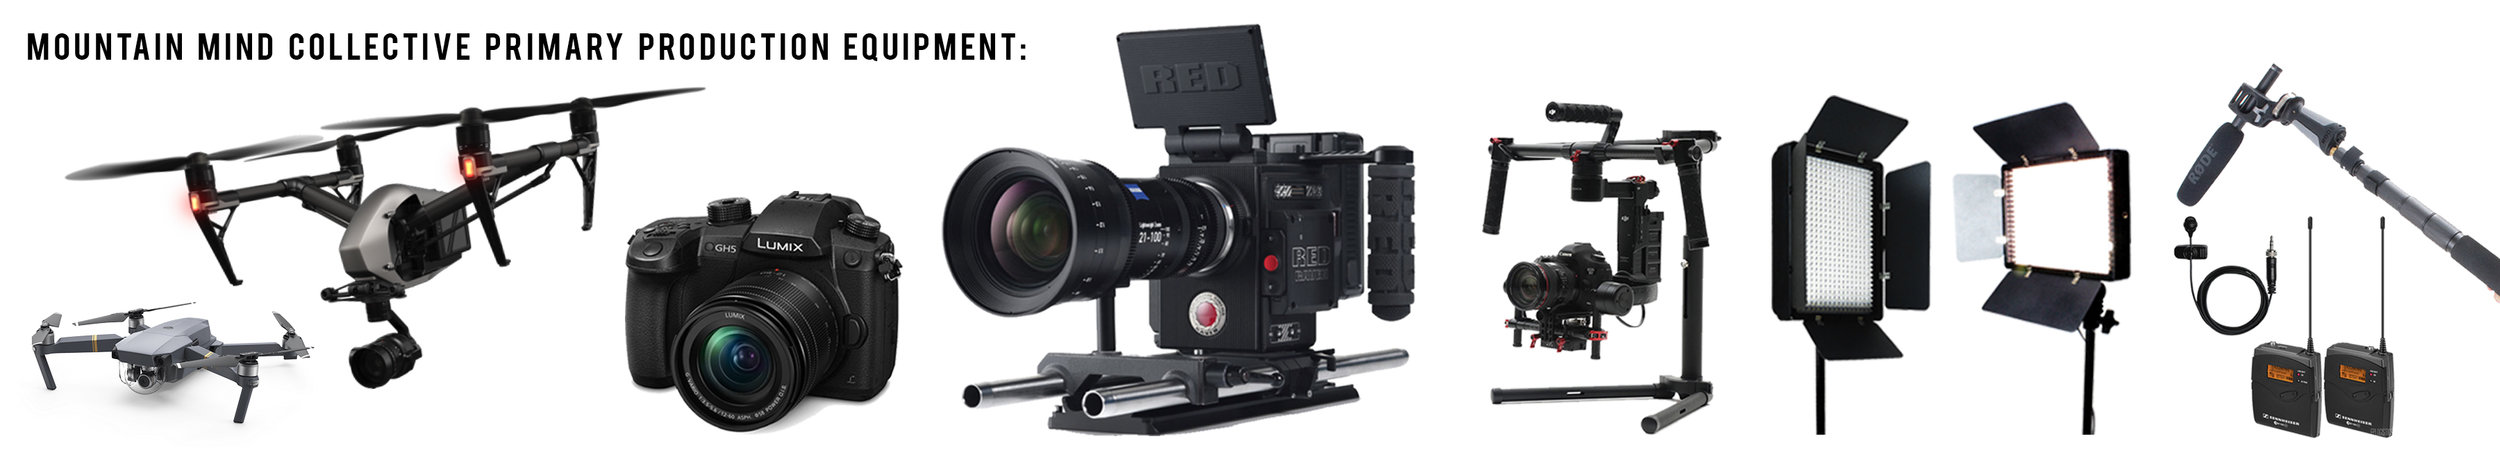 MMC Production Equipment 4.jpg